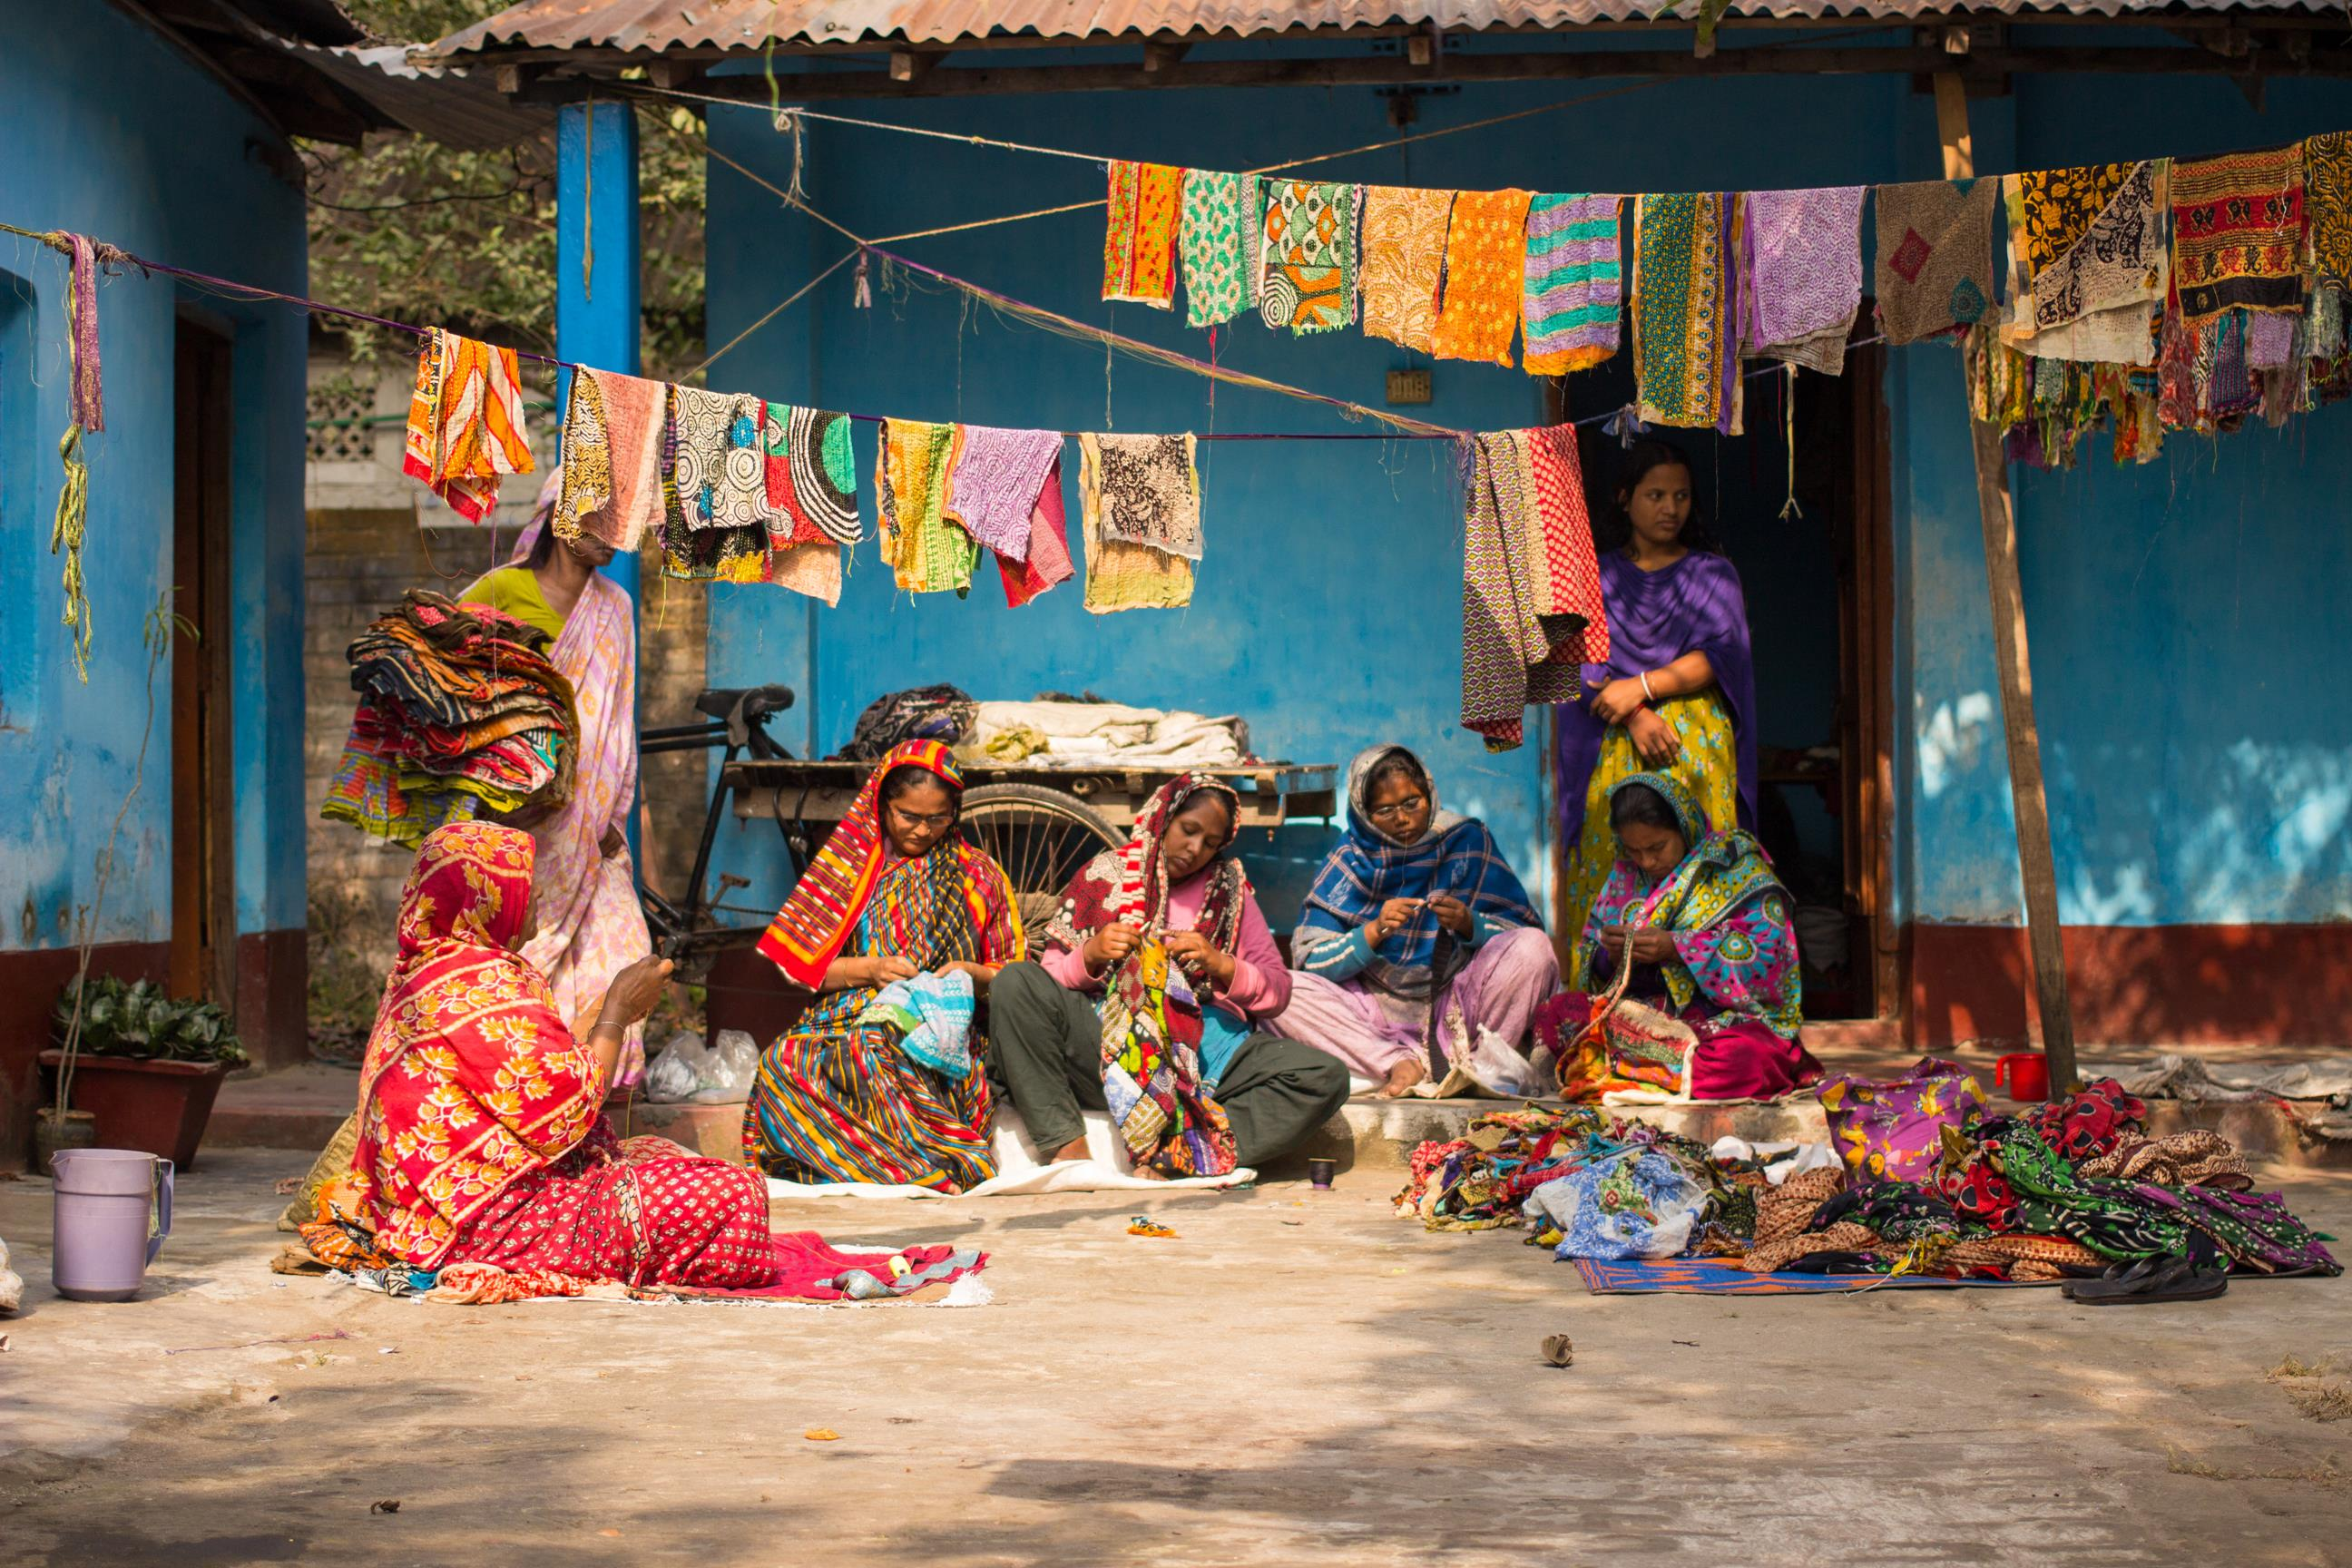 Women of the Hajiganj Group workshop in Bangladesh's Nilphamari District making recycled sari wrap baskets.